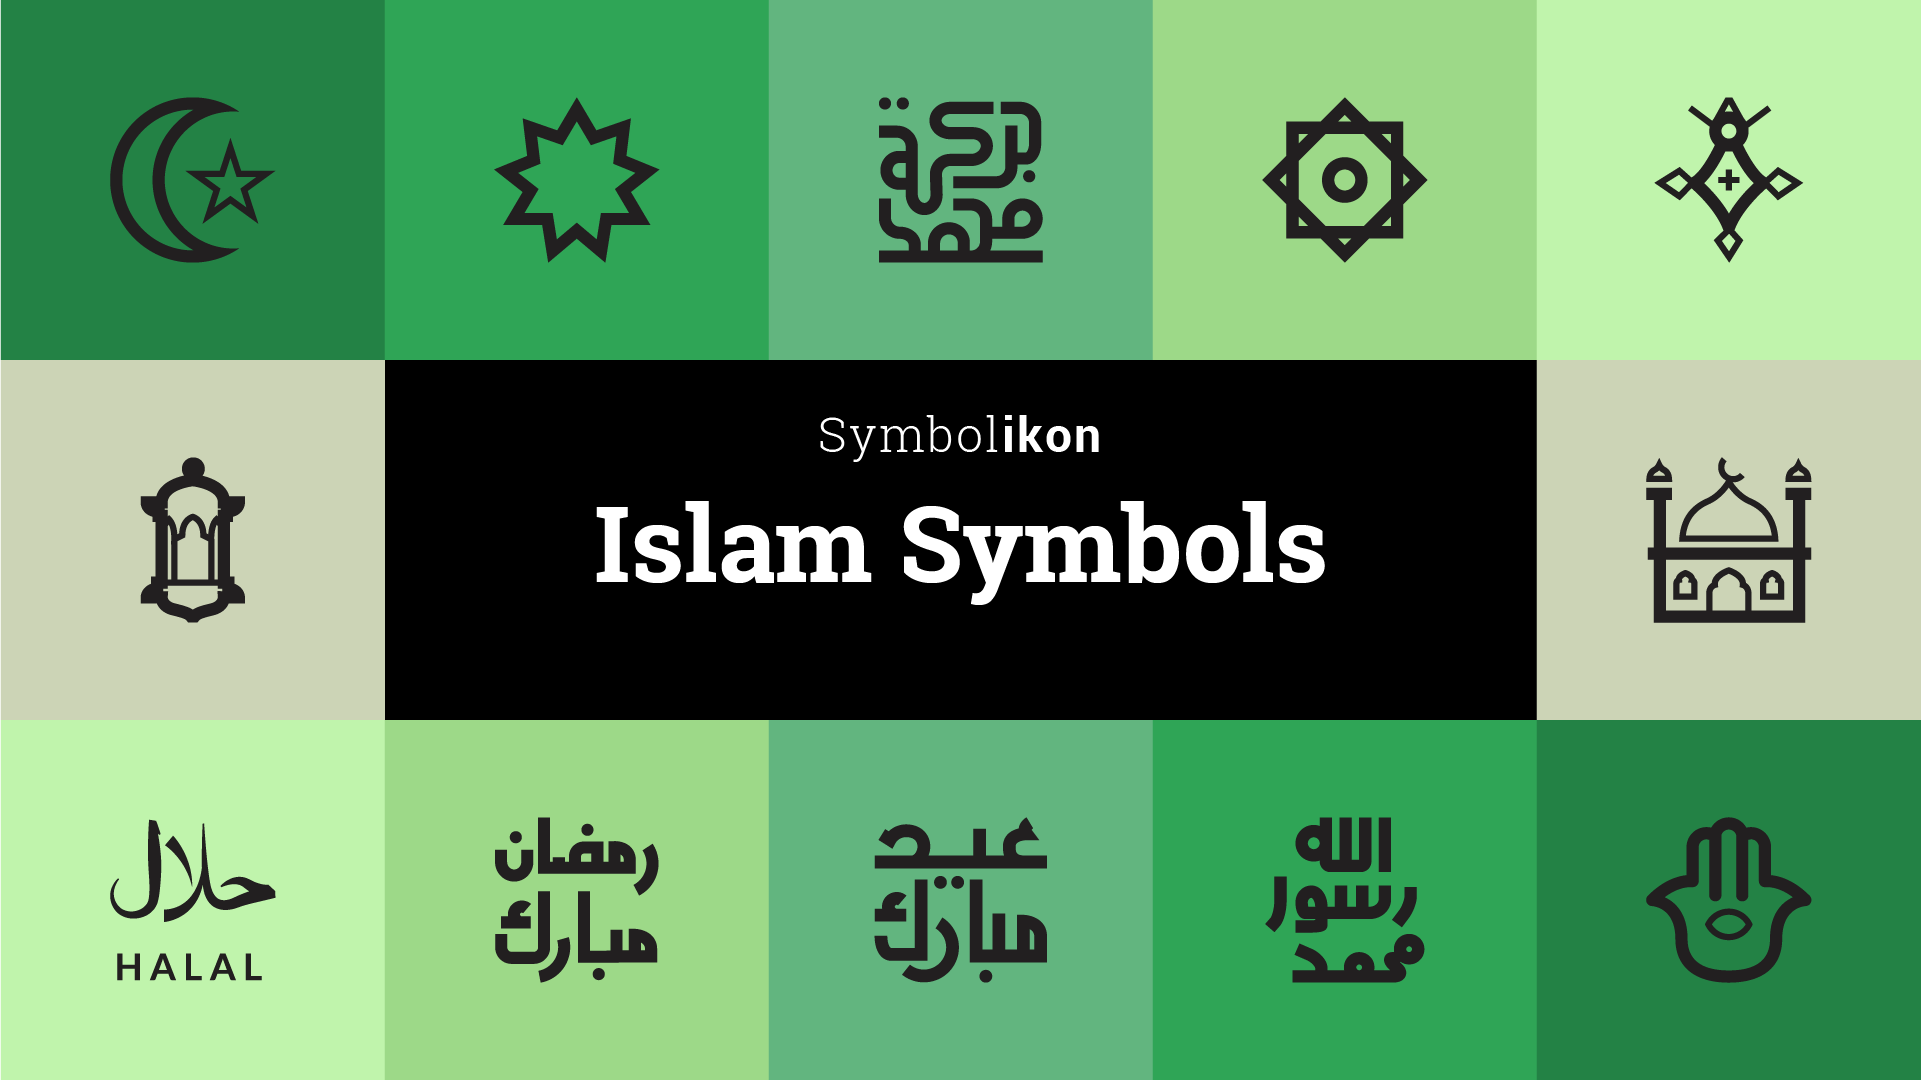 Islam symbols meanings